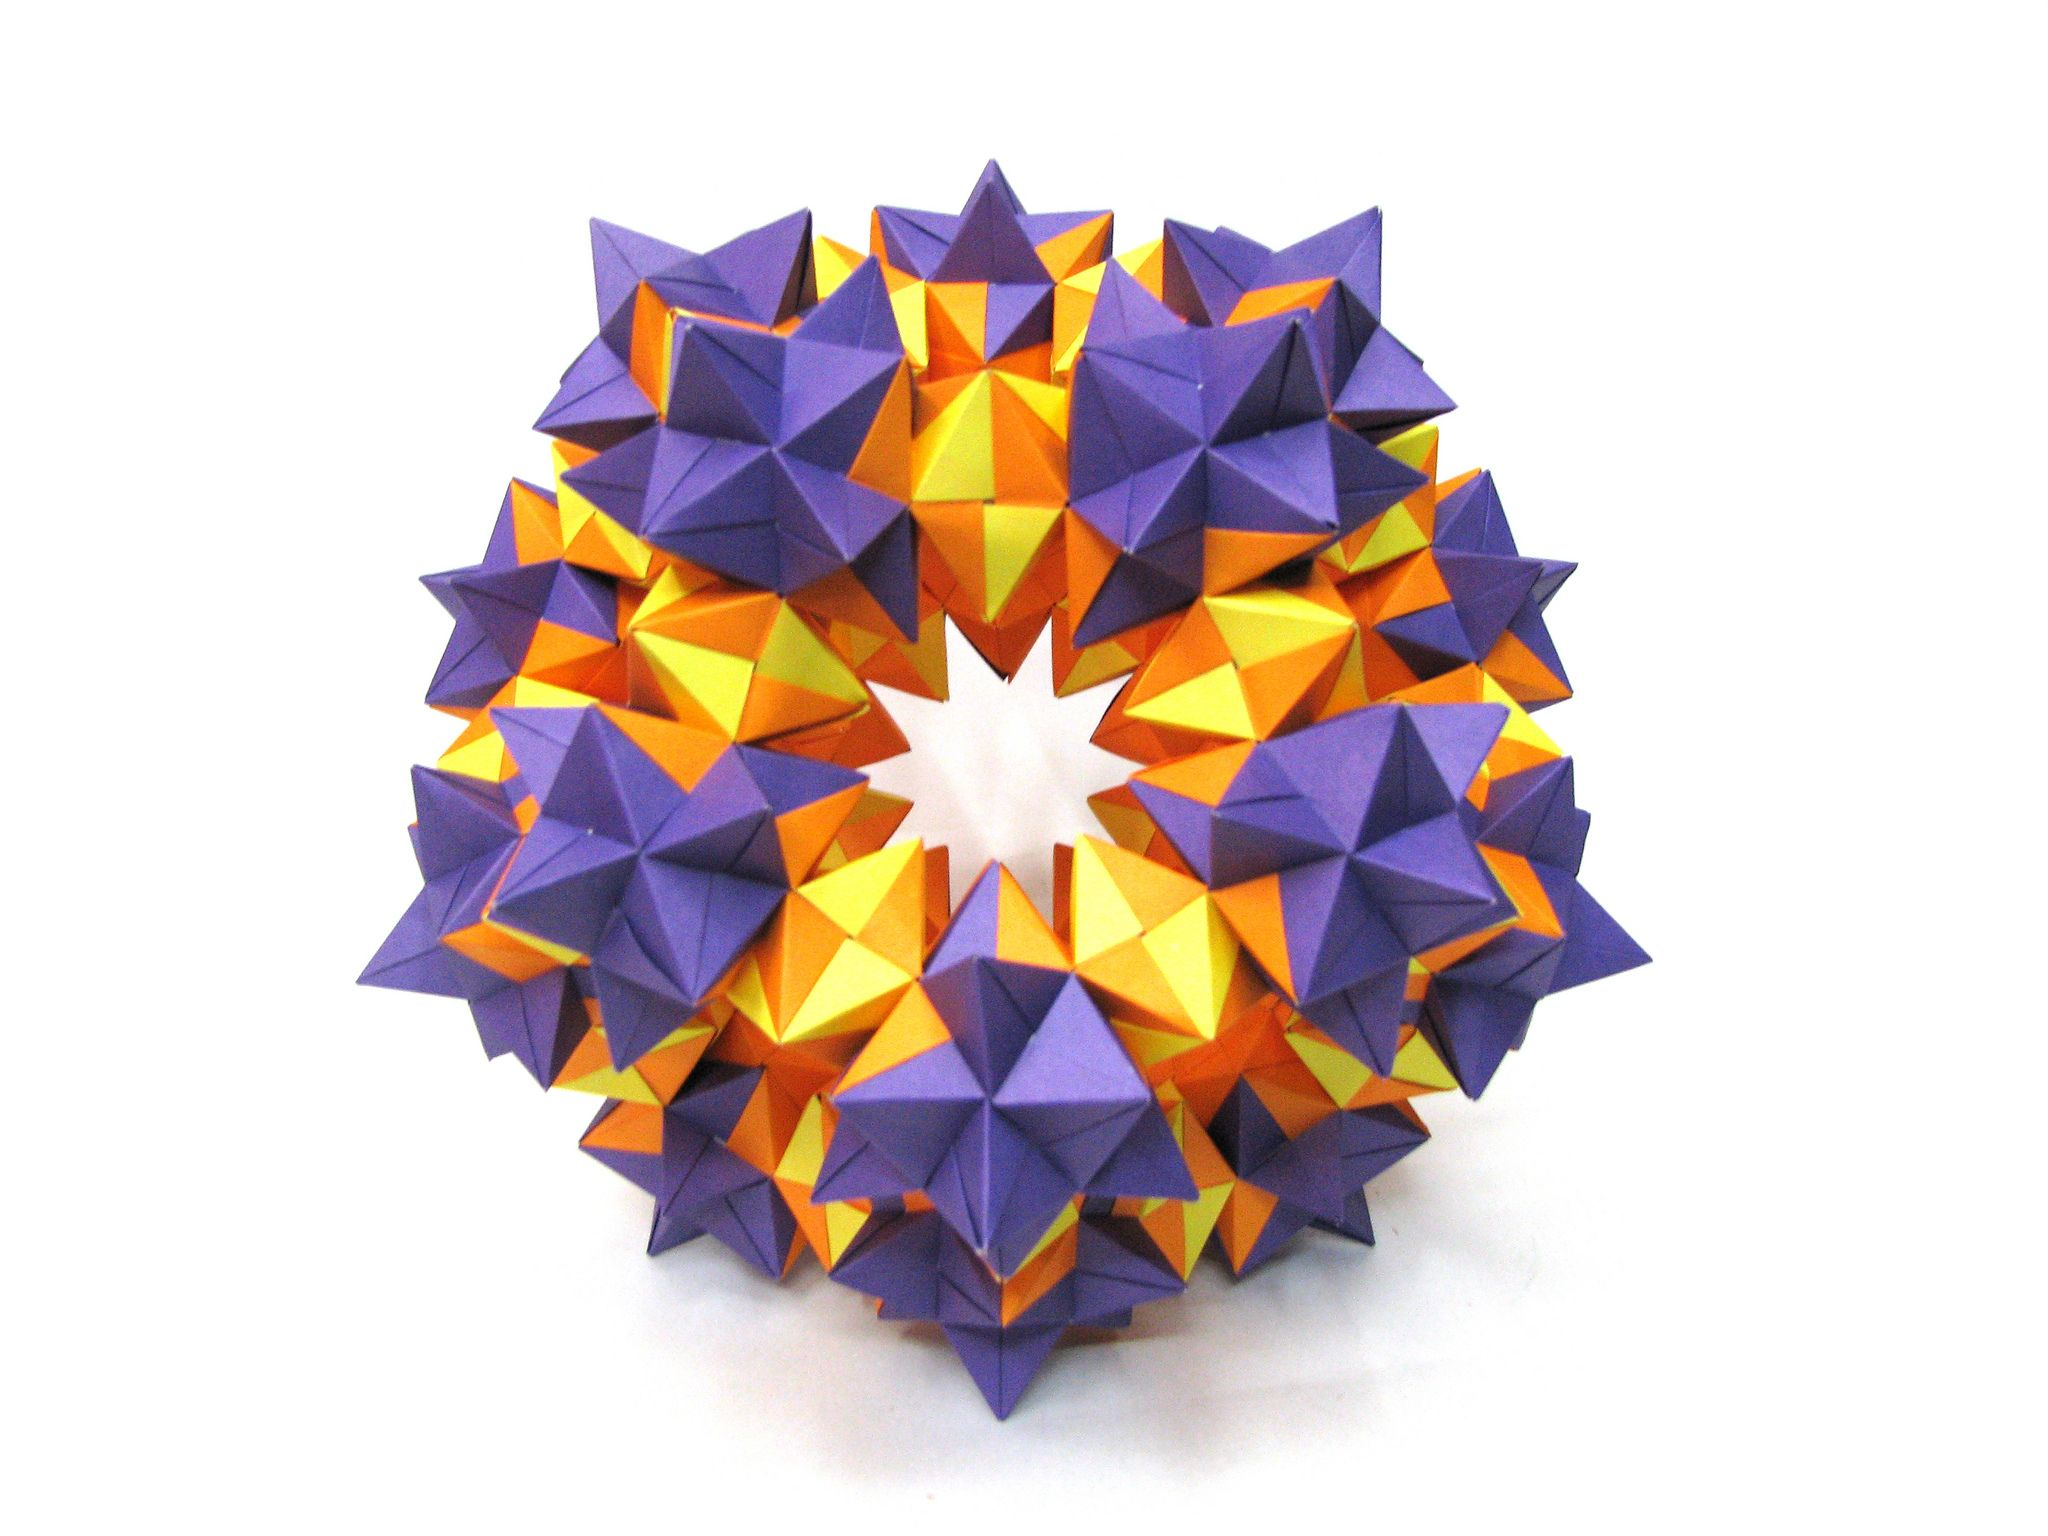 Origami Structure Of 570 Triangular Units